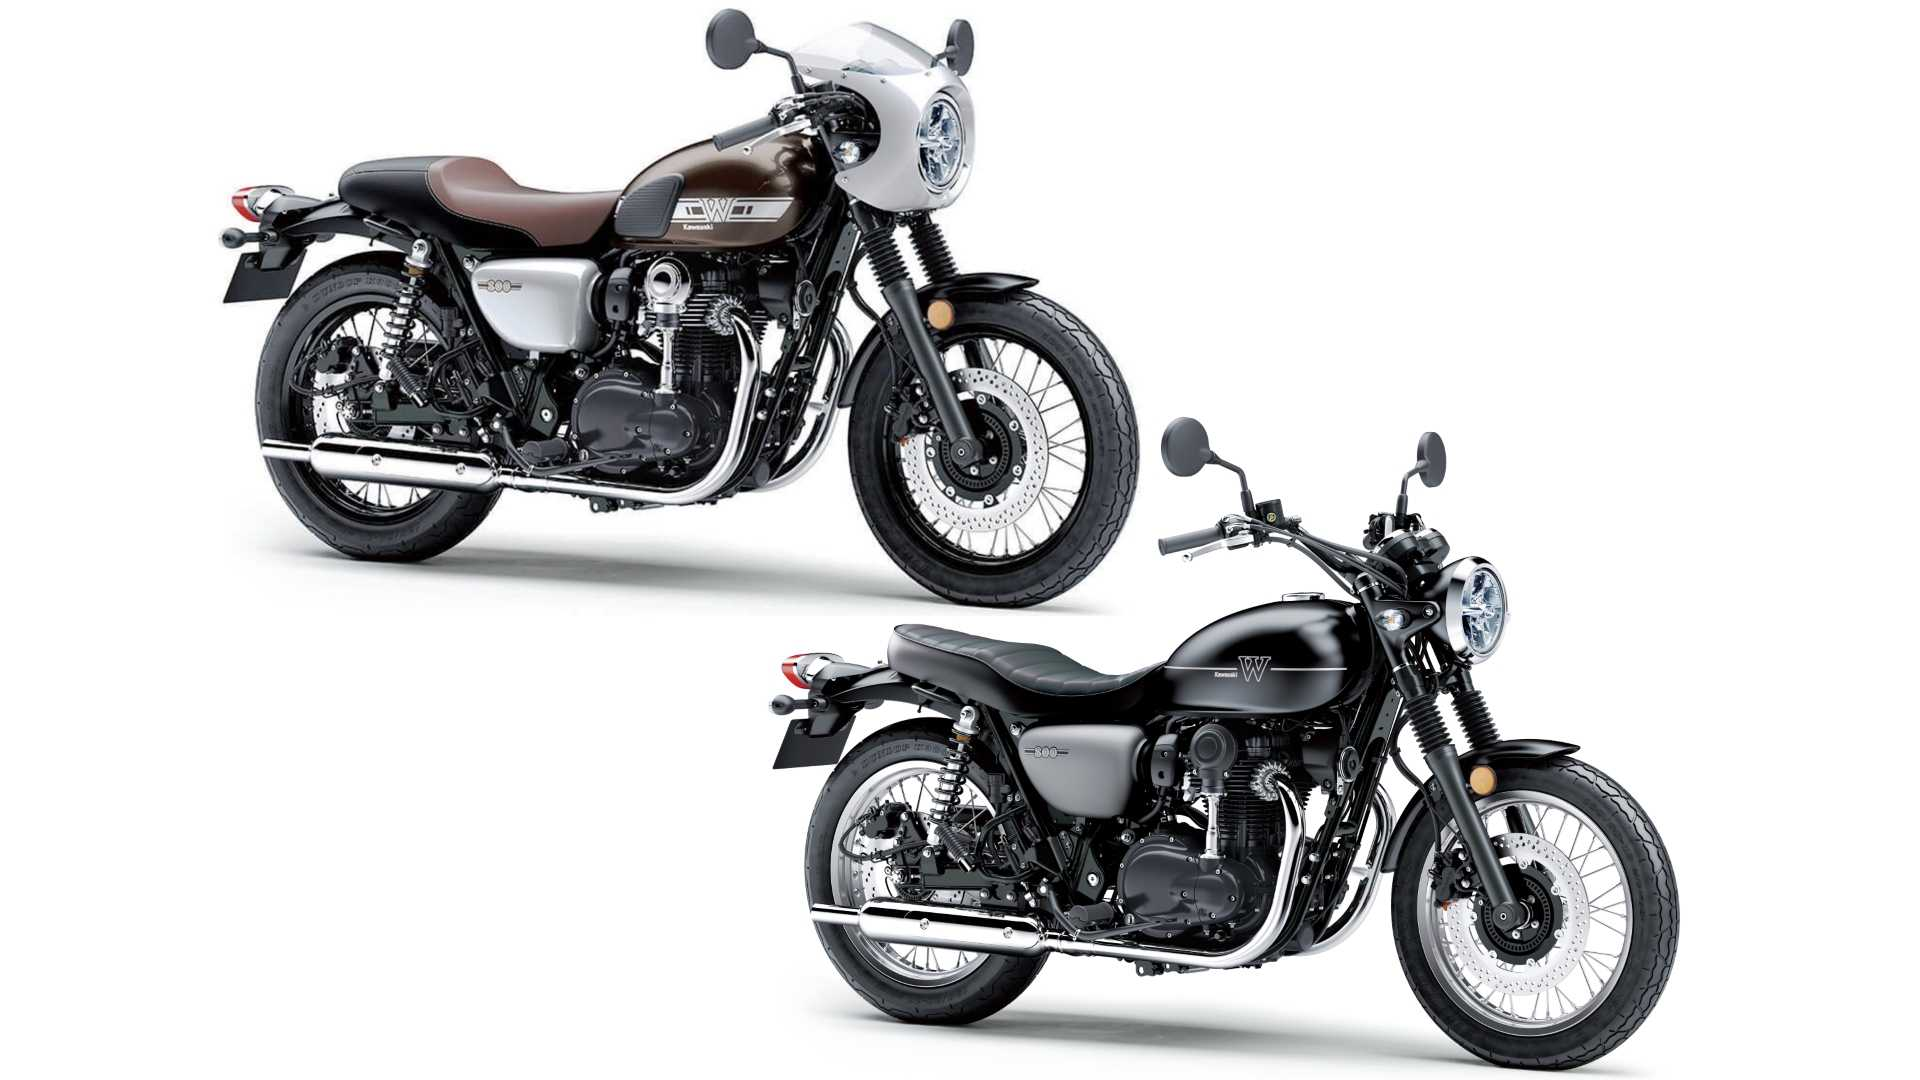 Kawasaki W800 Street To Join Cafe Stateside For 2019